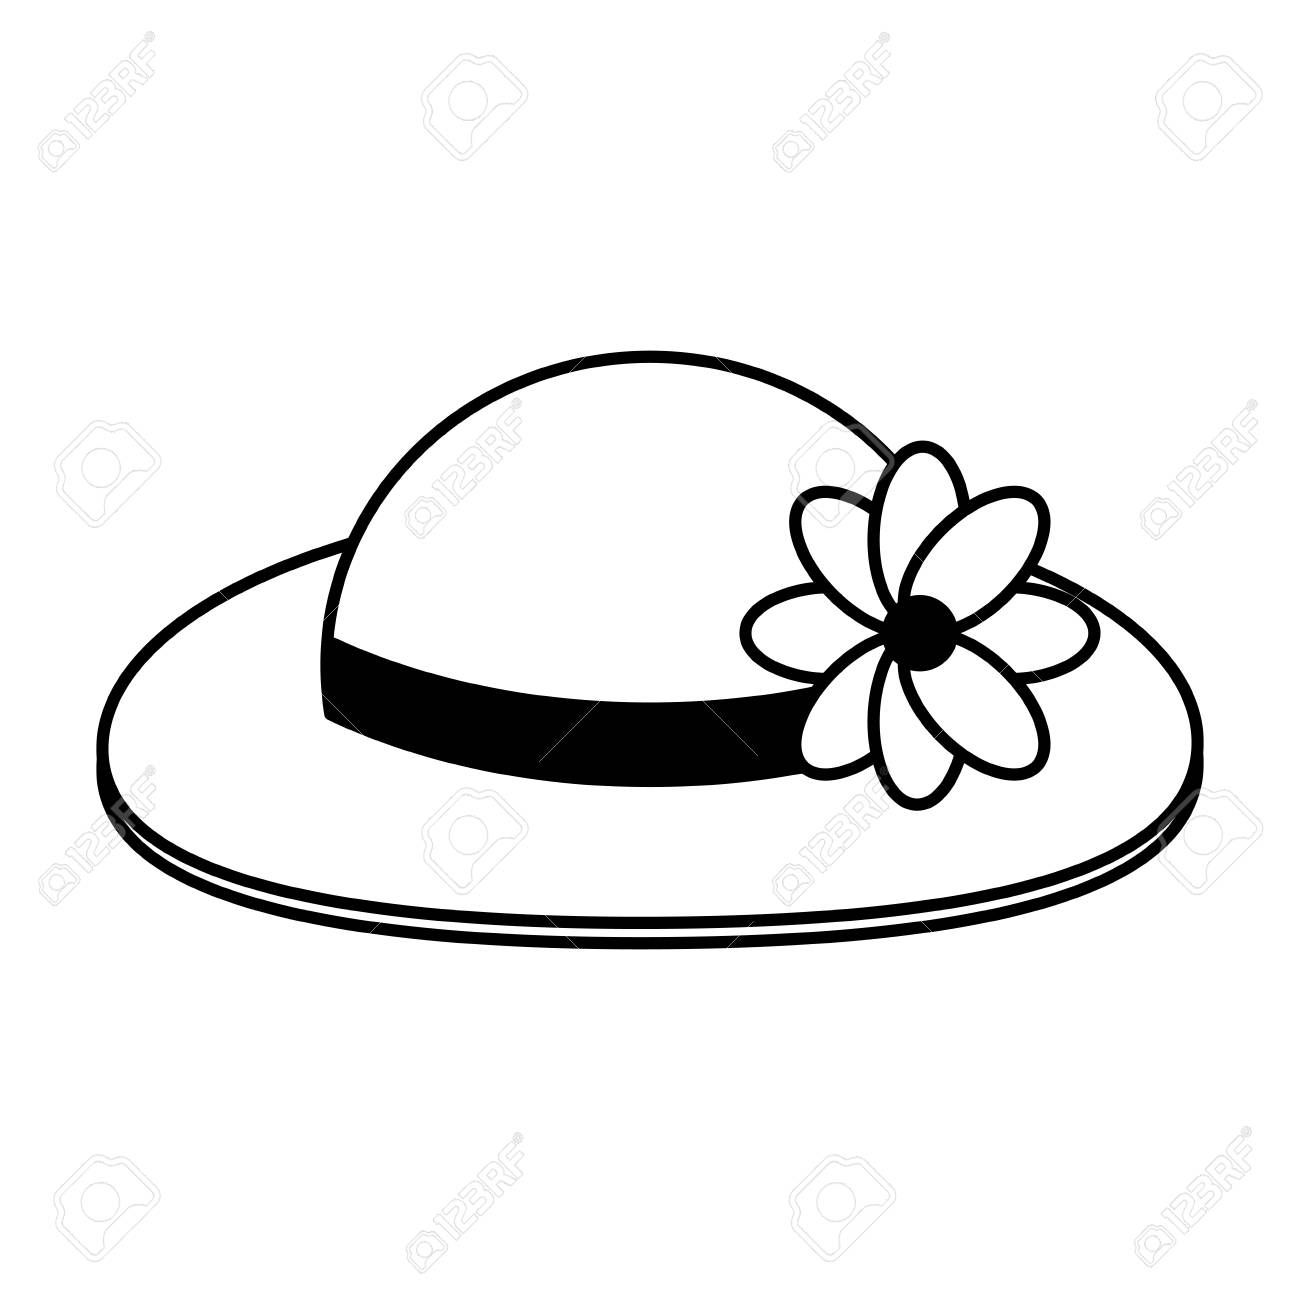 Hat Clipart Black And White Ideas Clipart Black And White Hat Clipart Black And White